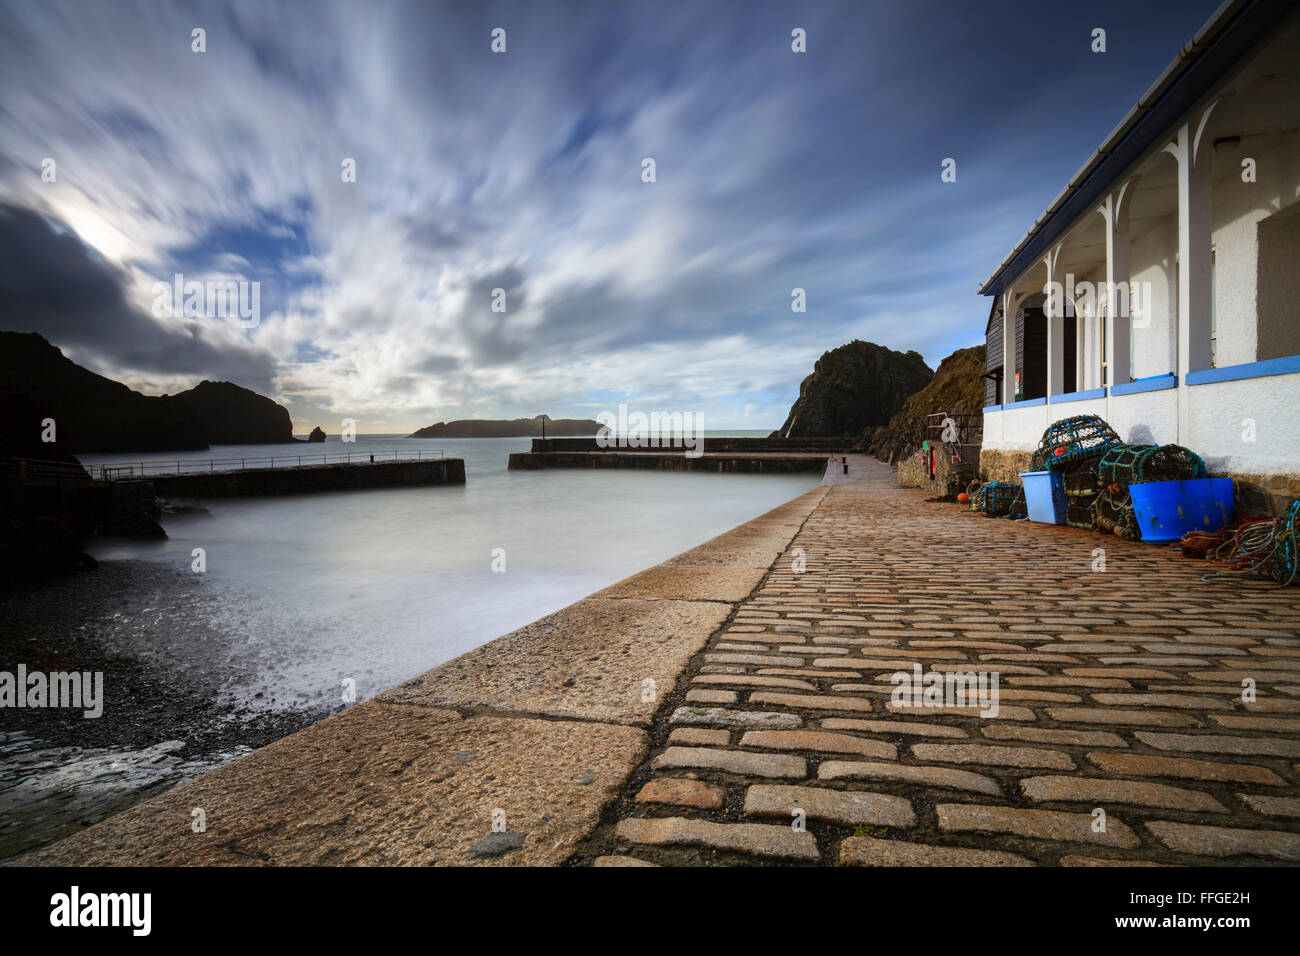 Mullion Harbour in Cornwall captured from the pier. - Stock Image